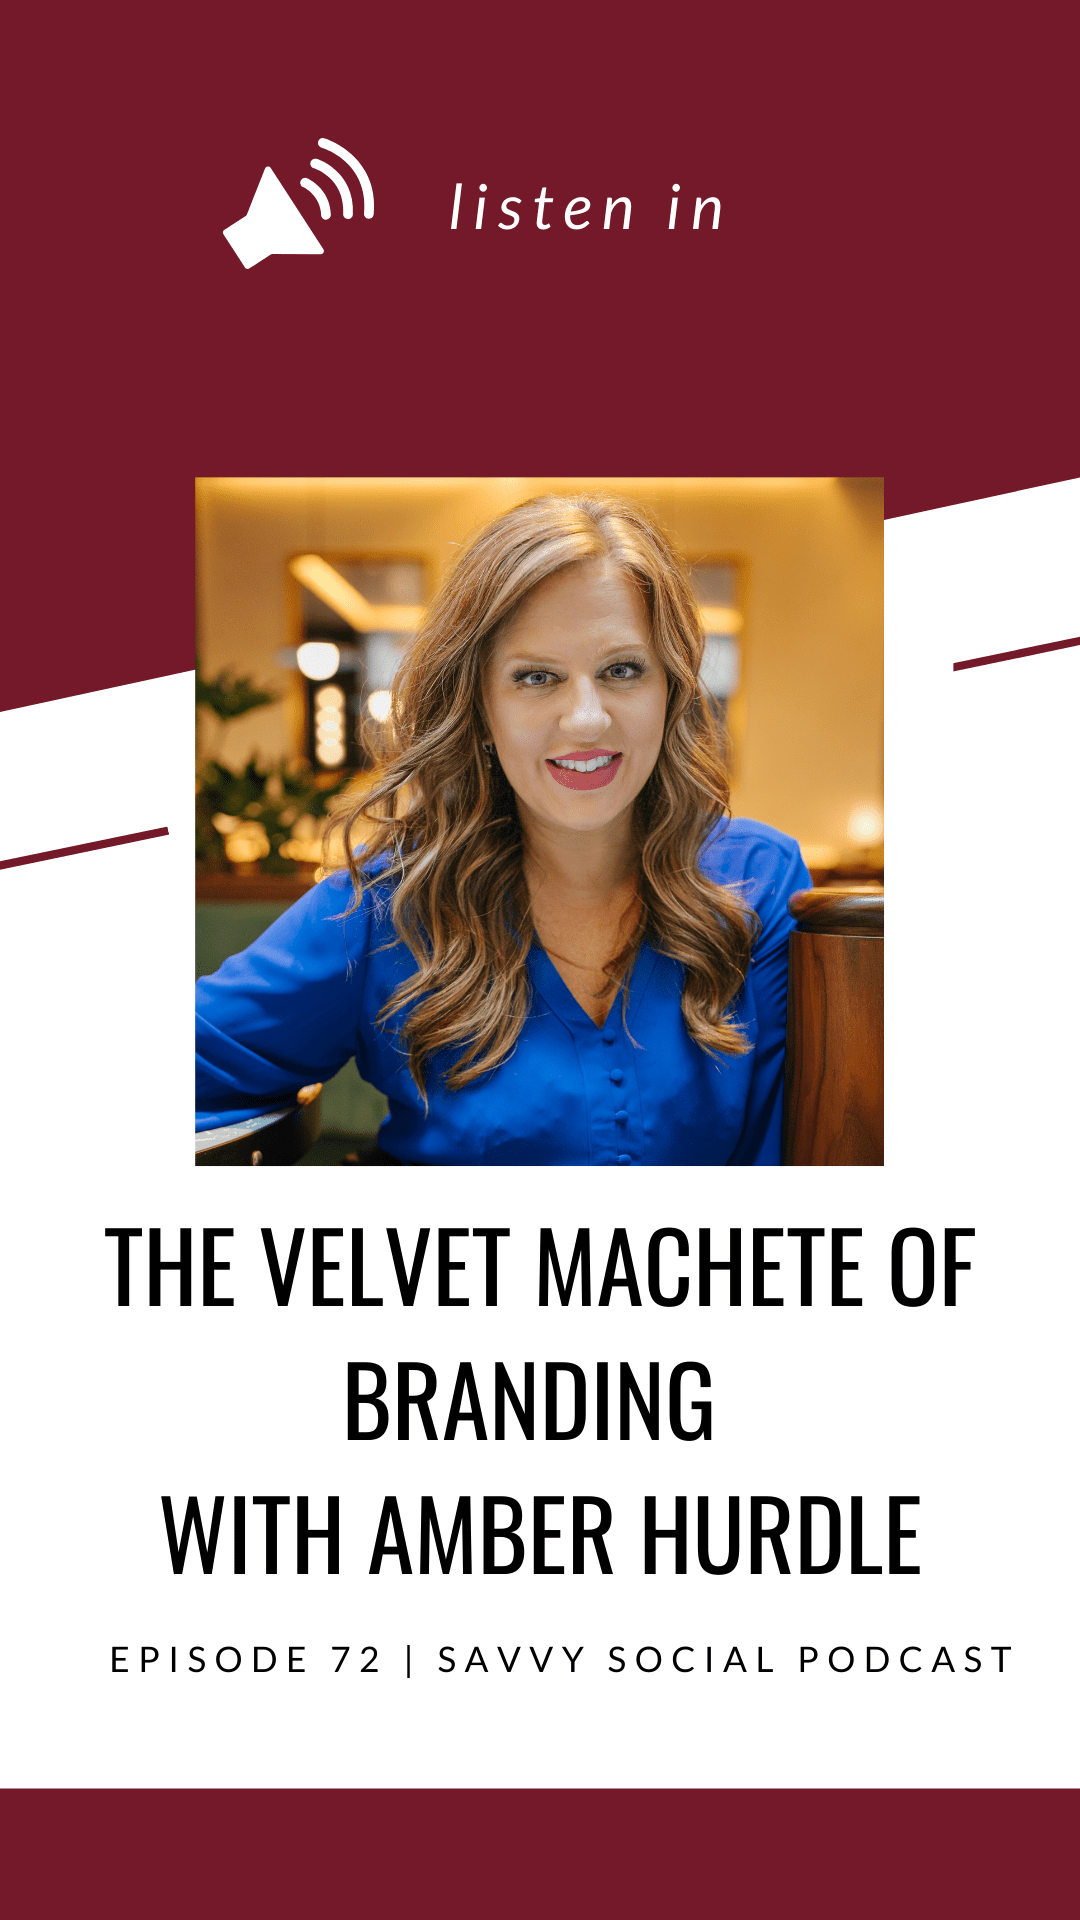 The Velvet Machete of Branding with Amber Hurdle